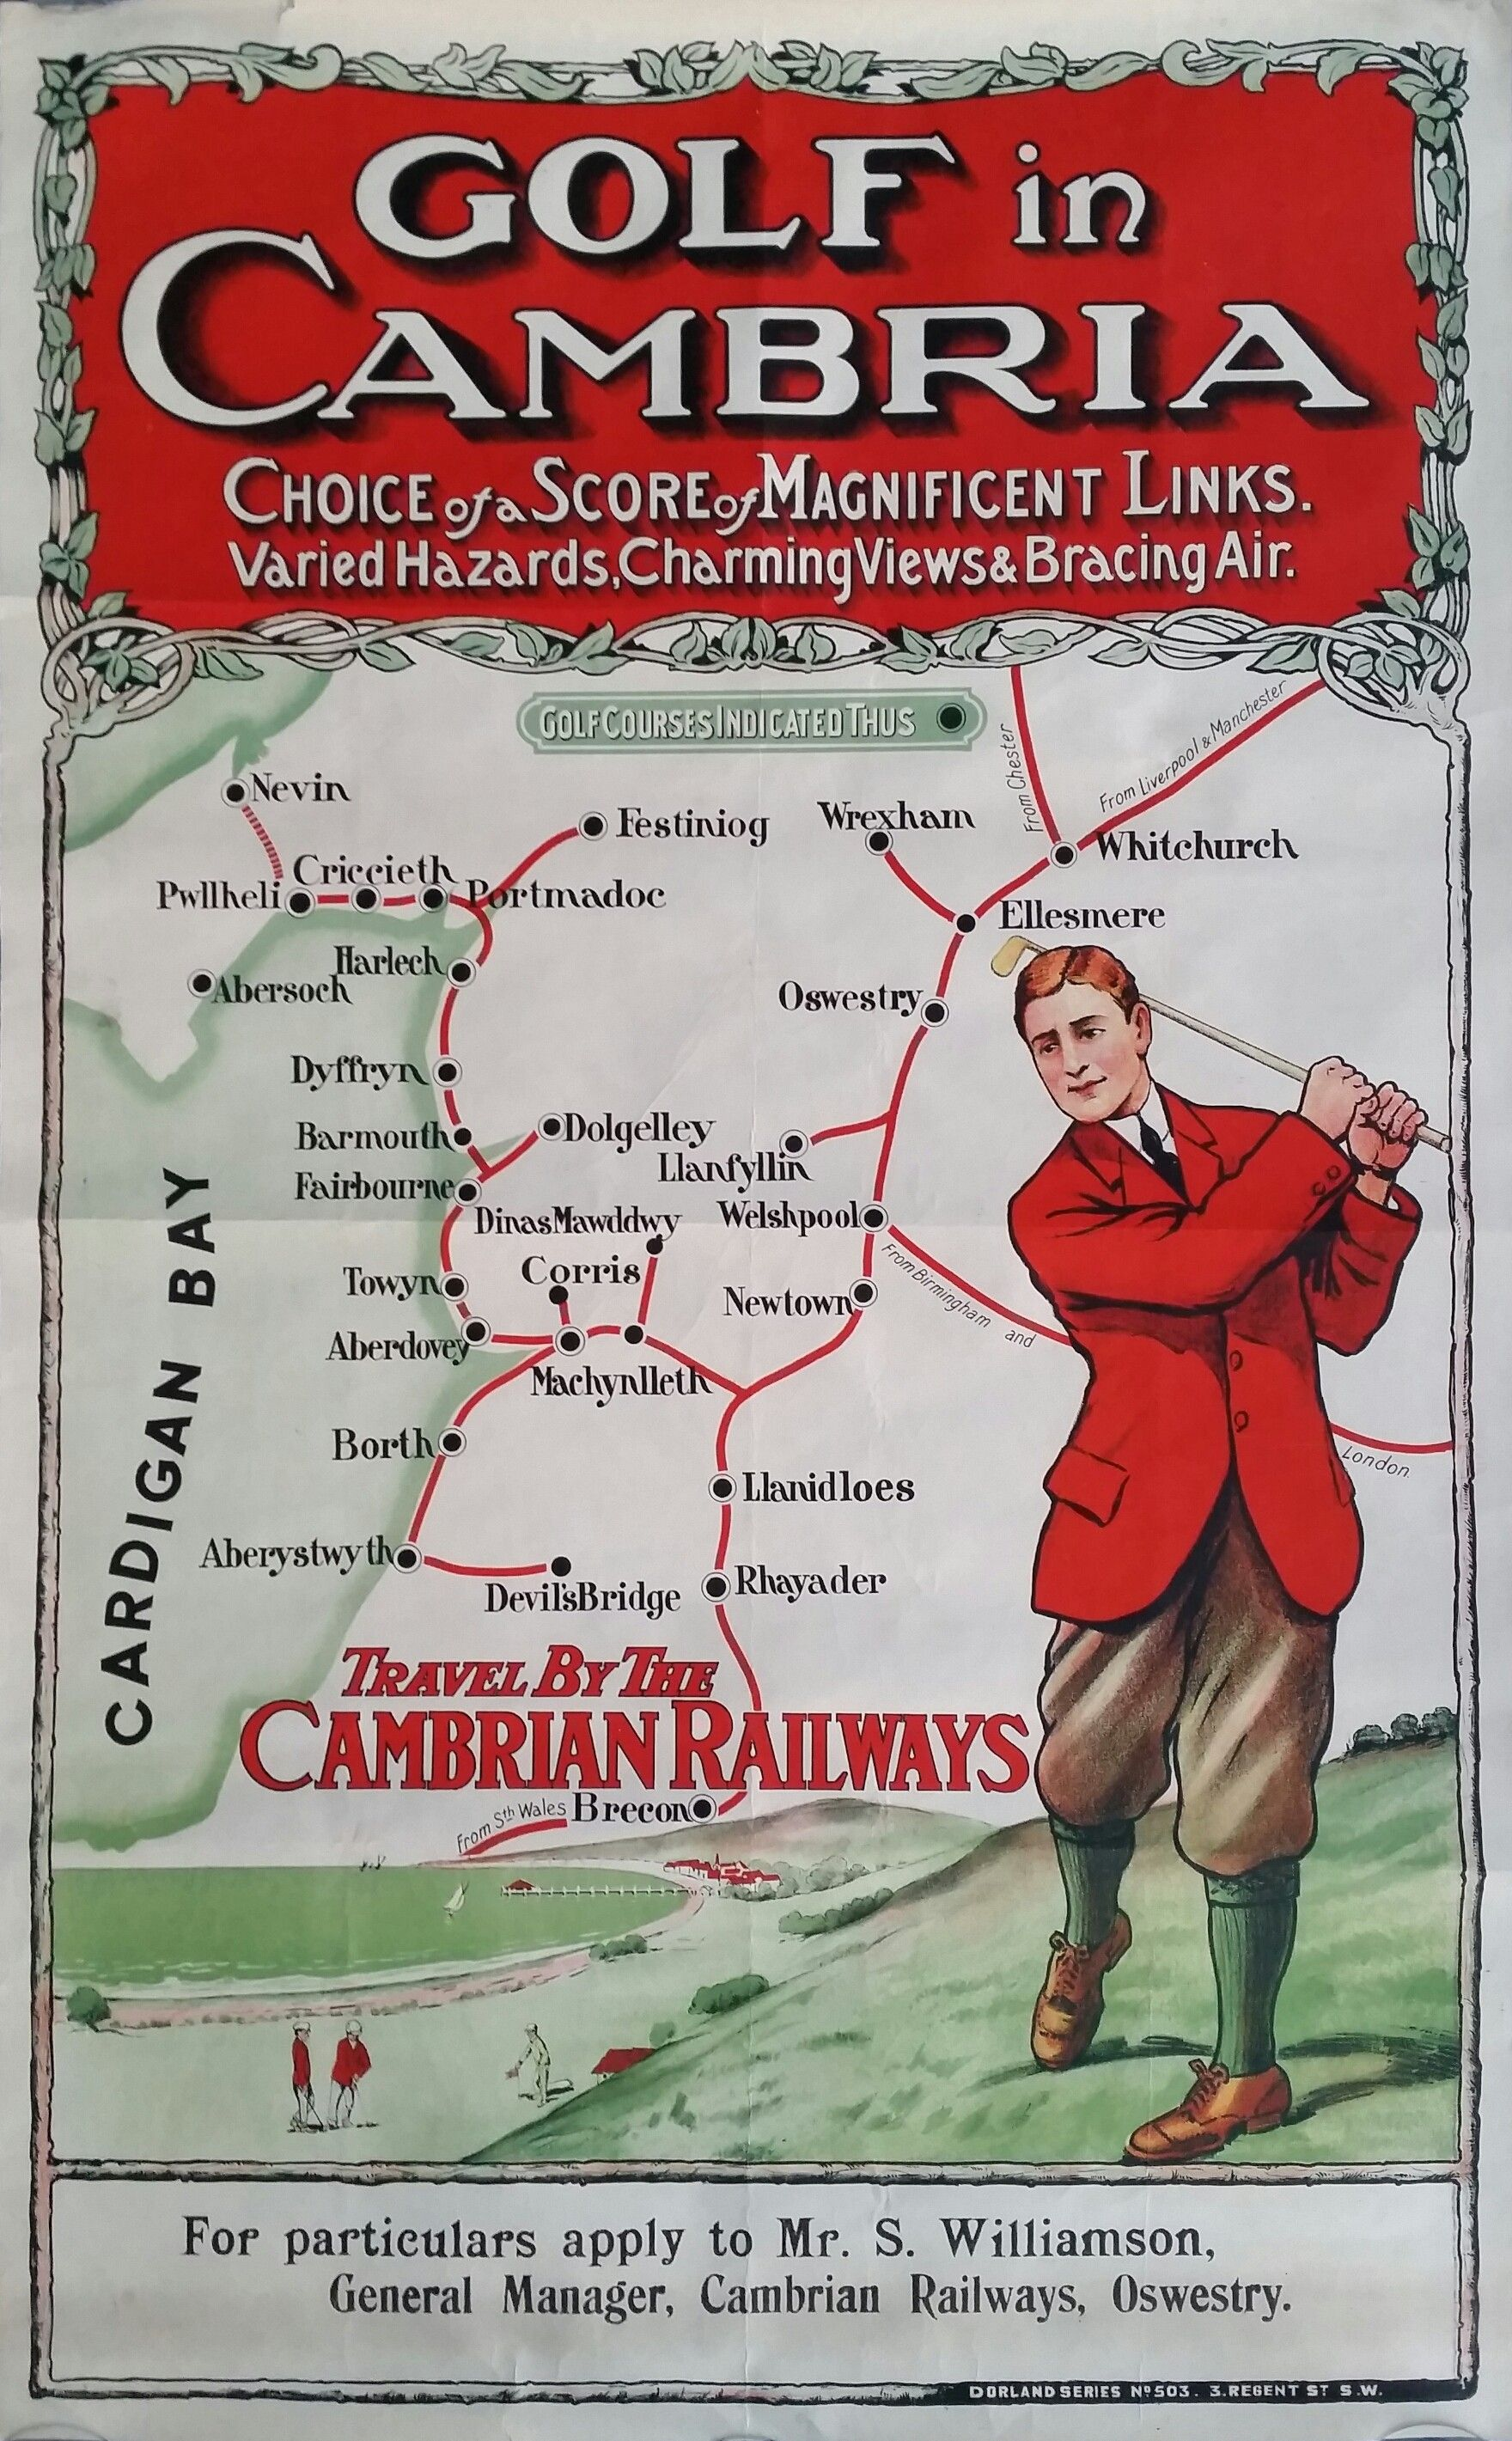 Original+vintage+poster+golf+Travel+by+th+cambrian+railways+-+Golf+in+Cambria++-+Cardigan+bay